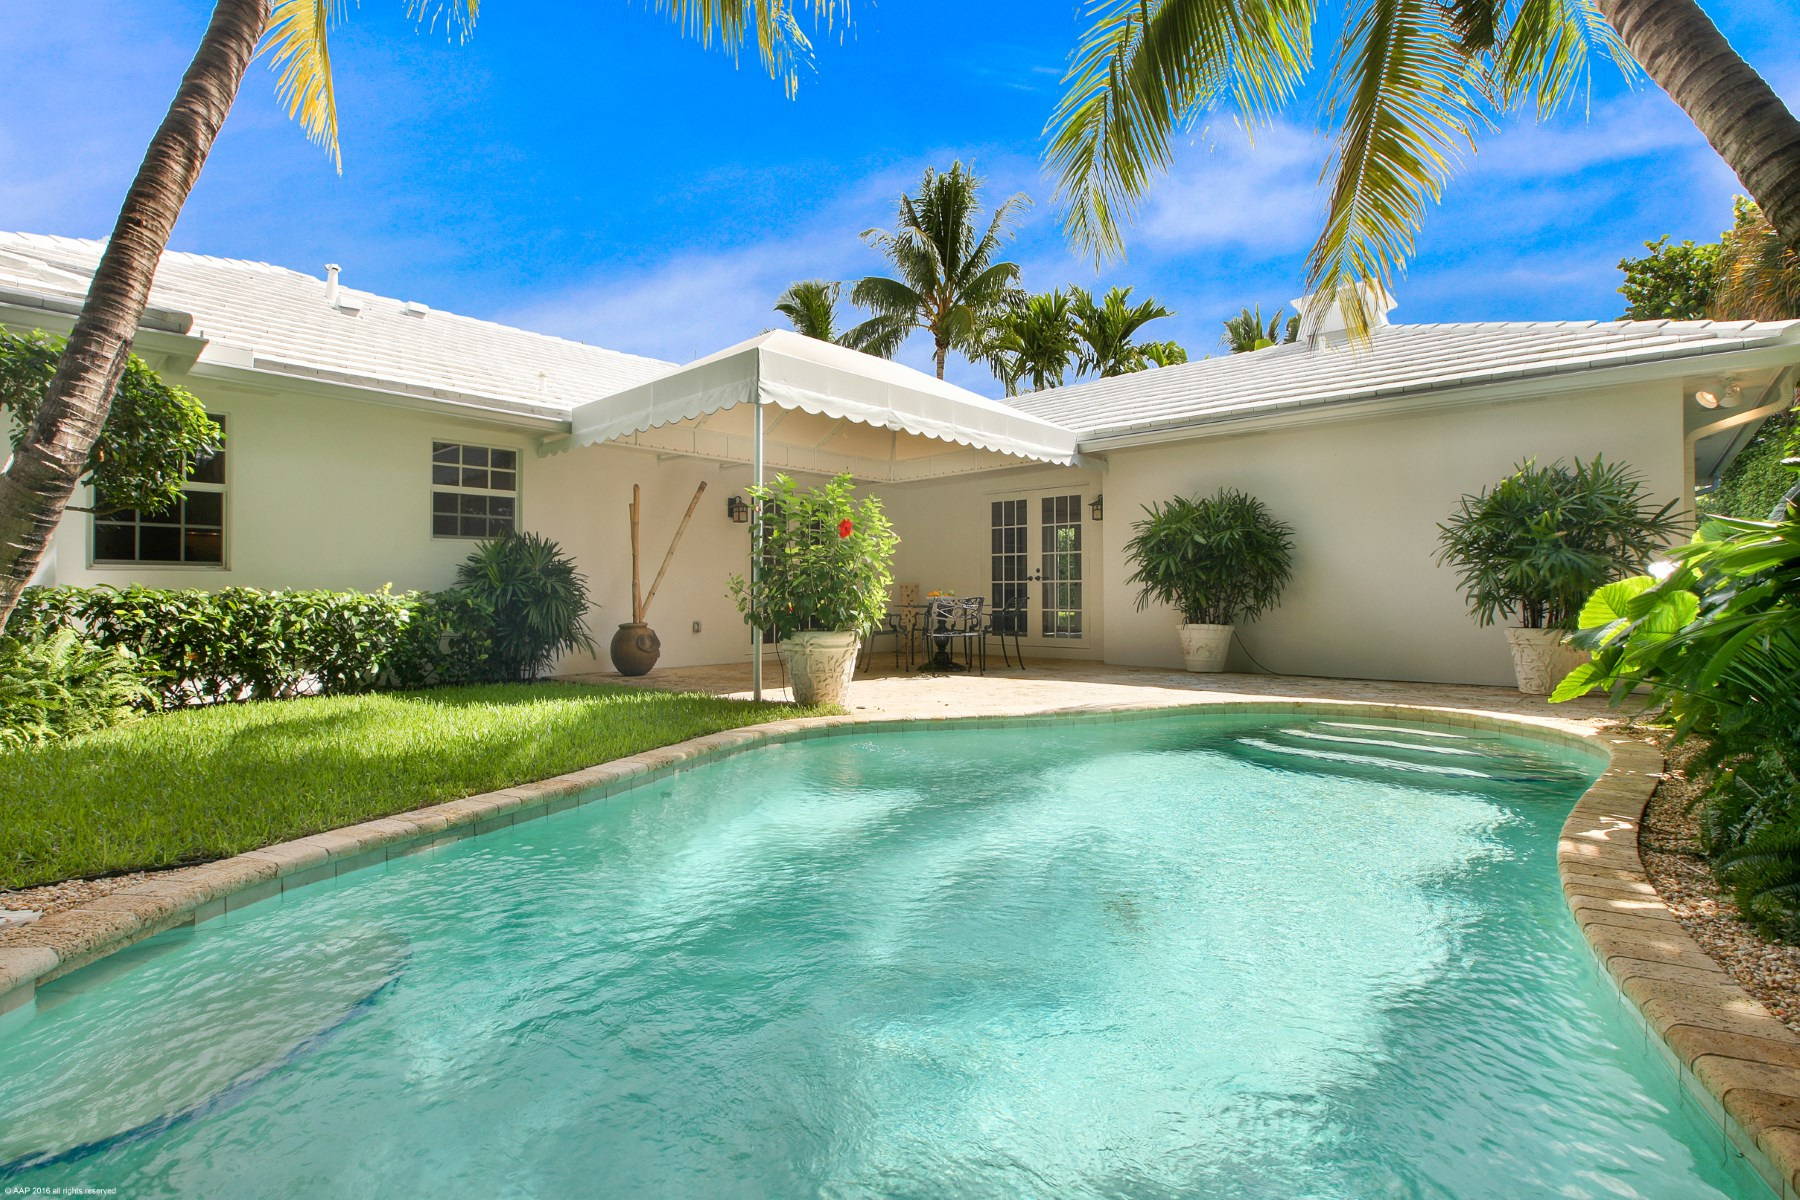 Villa per Vendita alle ore 200 Via Linda North End, Palm Beach, Florida, 33480 Stati Uniti